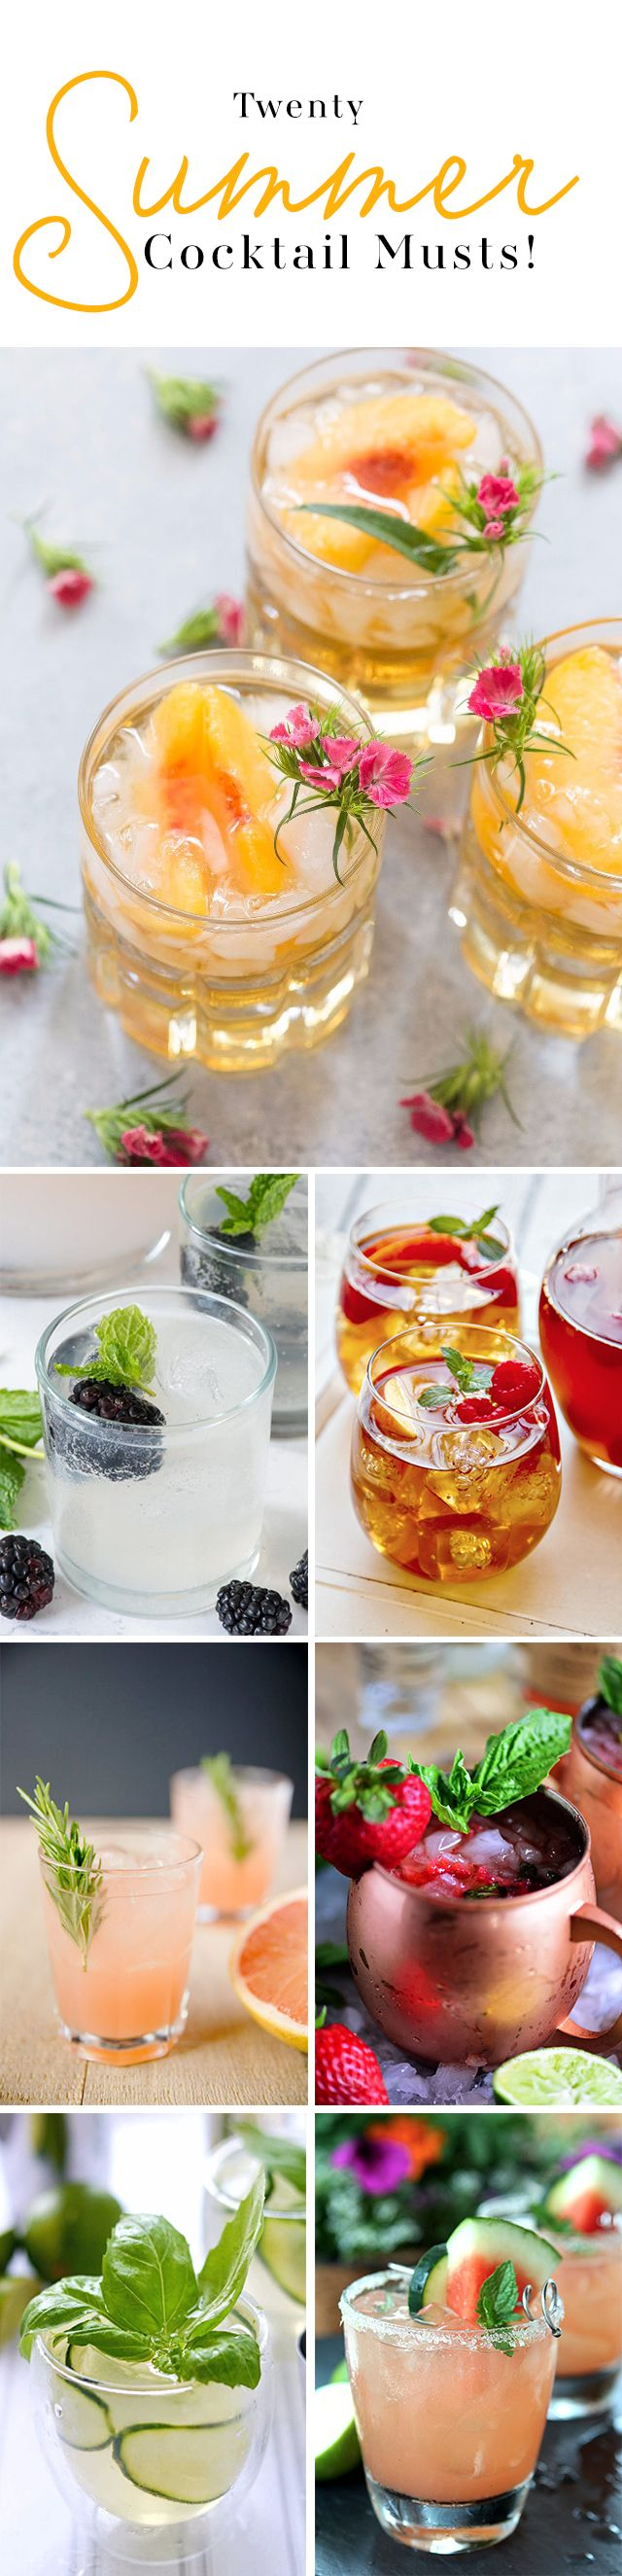 Sip Sip Hooray! It's Summer time and we are here to get our drink on!